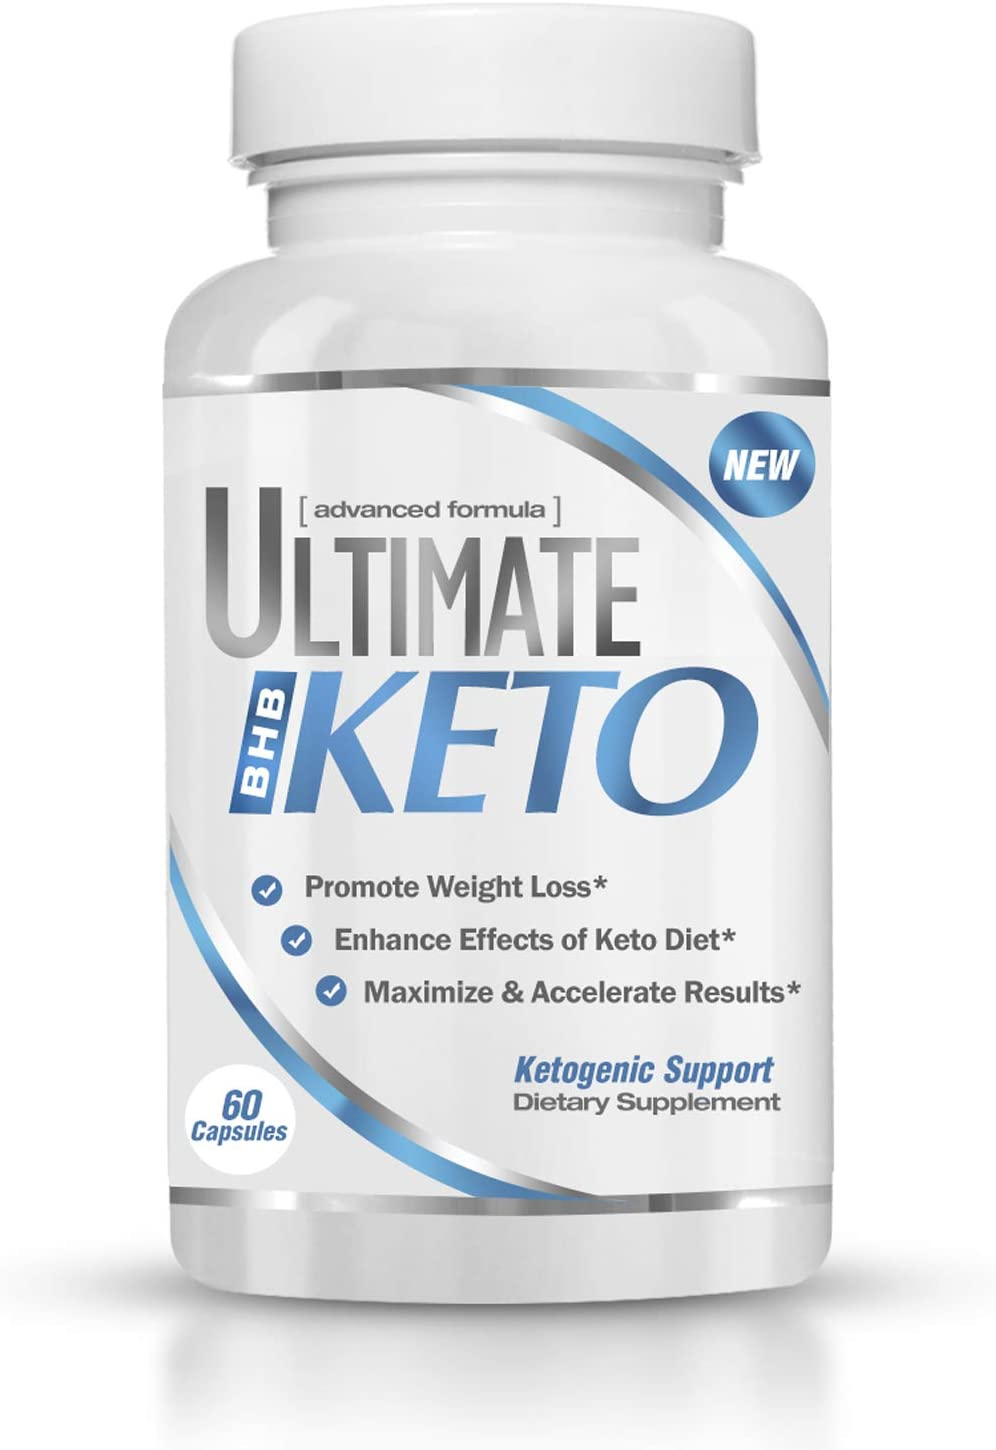 Ultimate Keto Reviews, Safe? work? use it? buy?